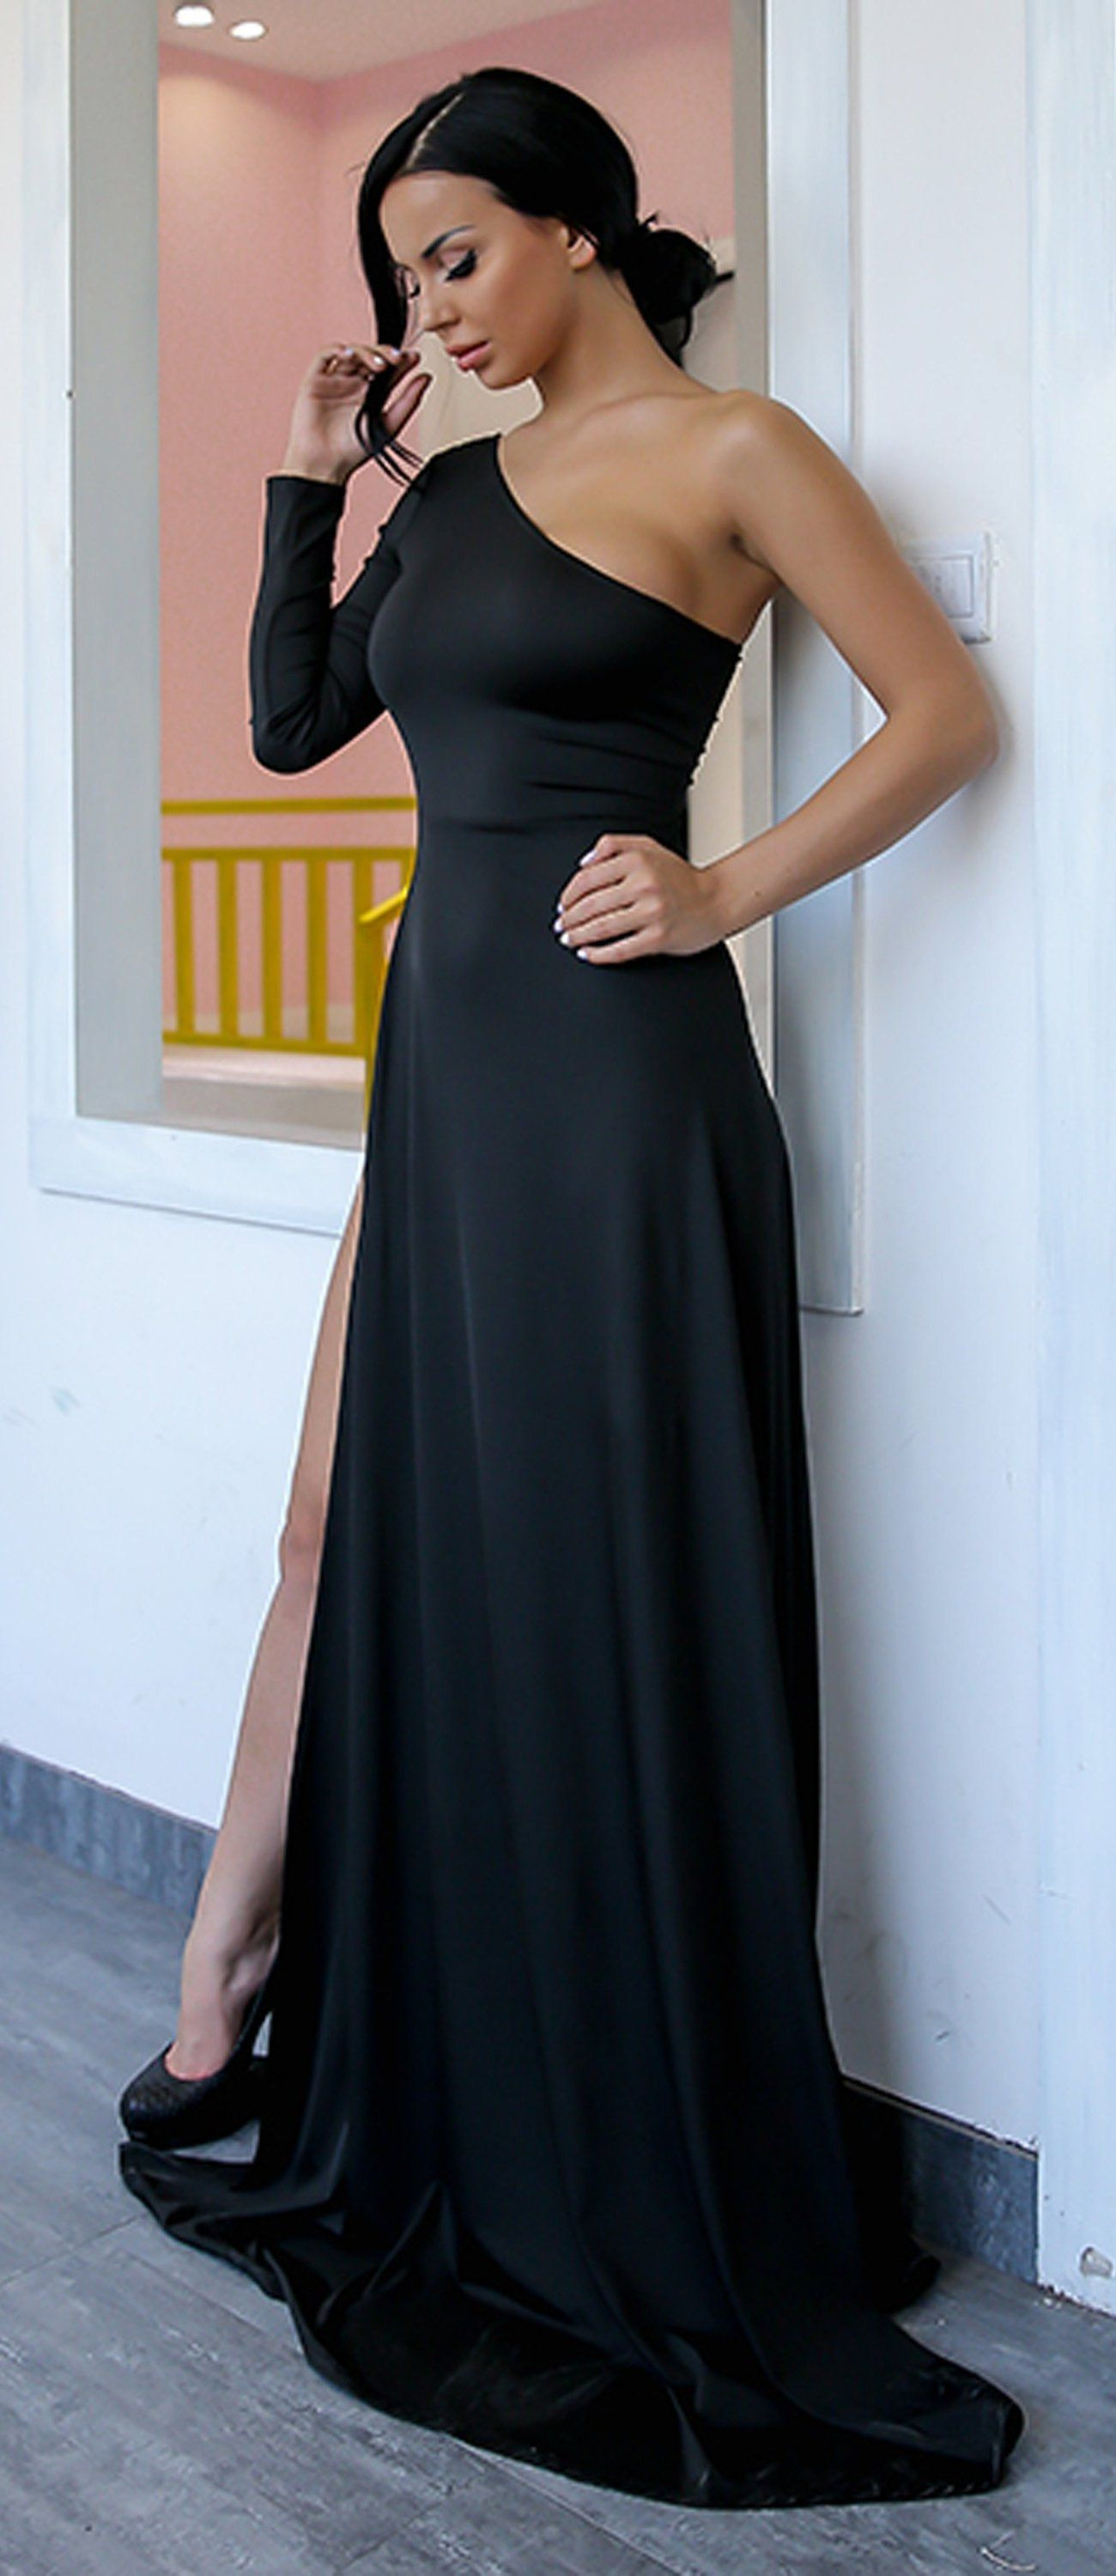 c71fdcaf01e4 Classy Simple Long Prom Dresses with Sleeves in Black - One off the Shoulder  Asymmetrical Tight